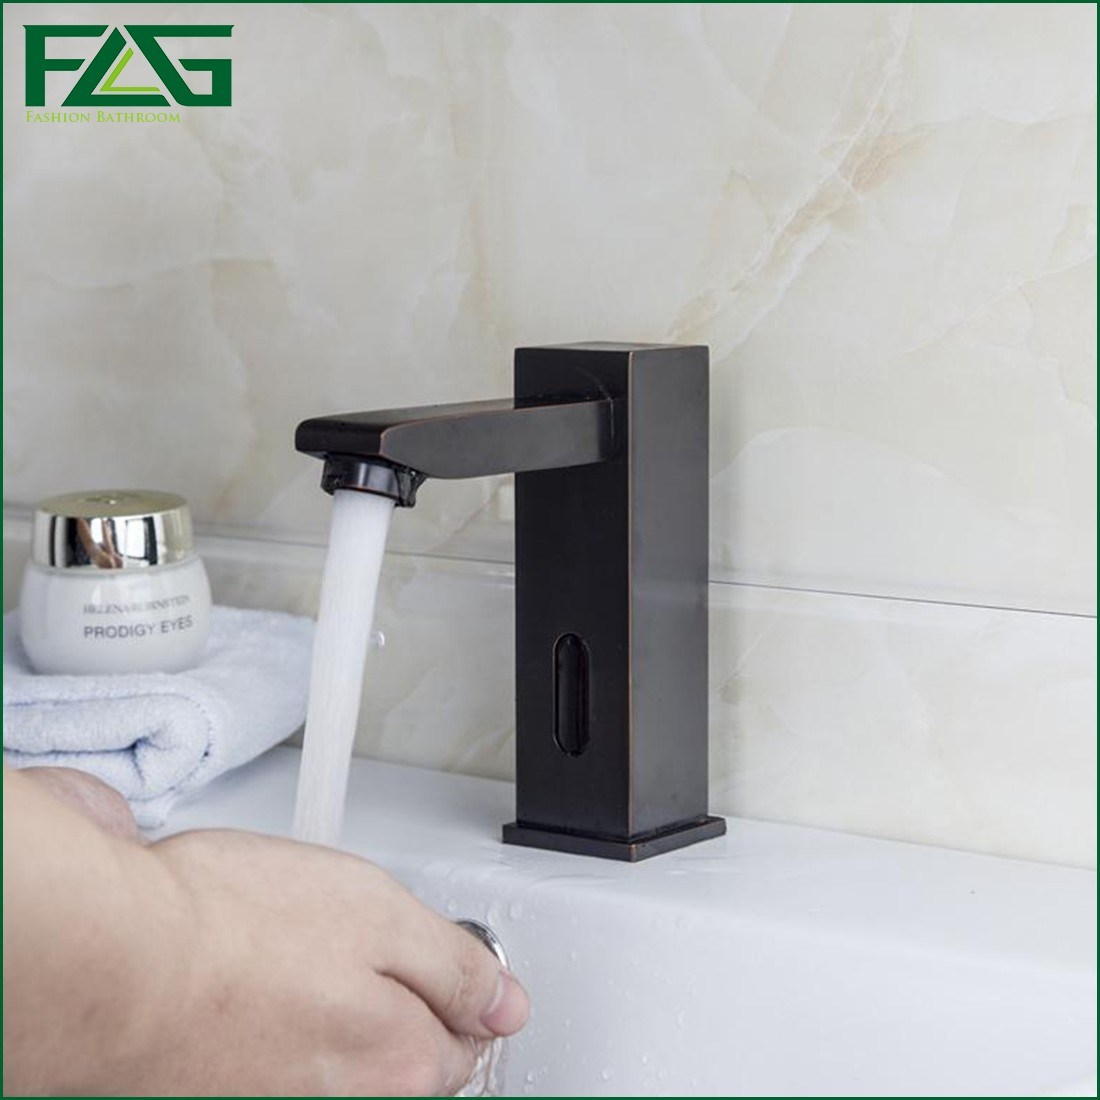 Flg Automatic Sensor Waterfall Orb Bathroom Basin Sink Mixer Faucet